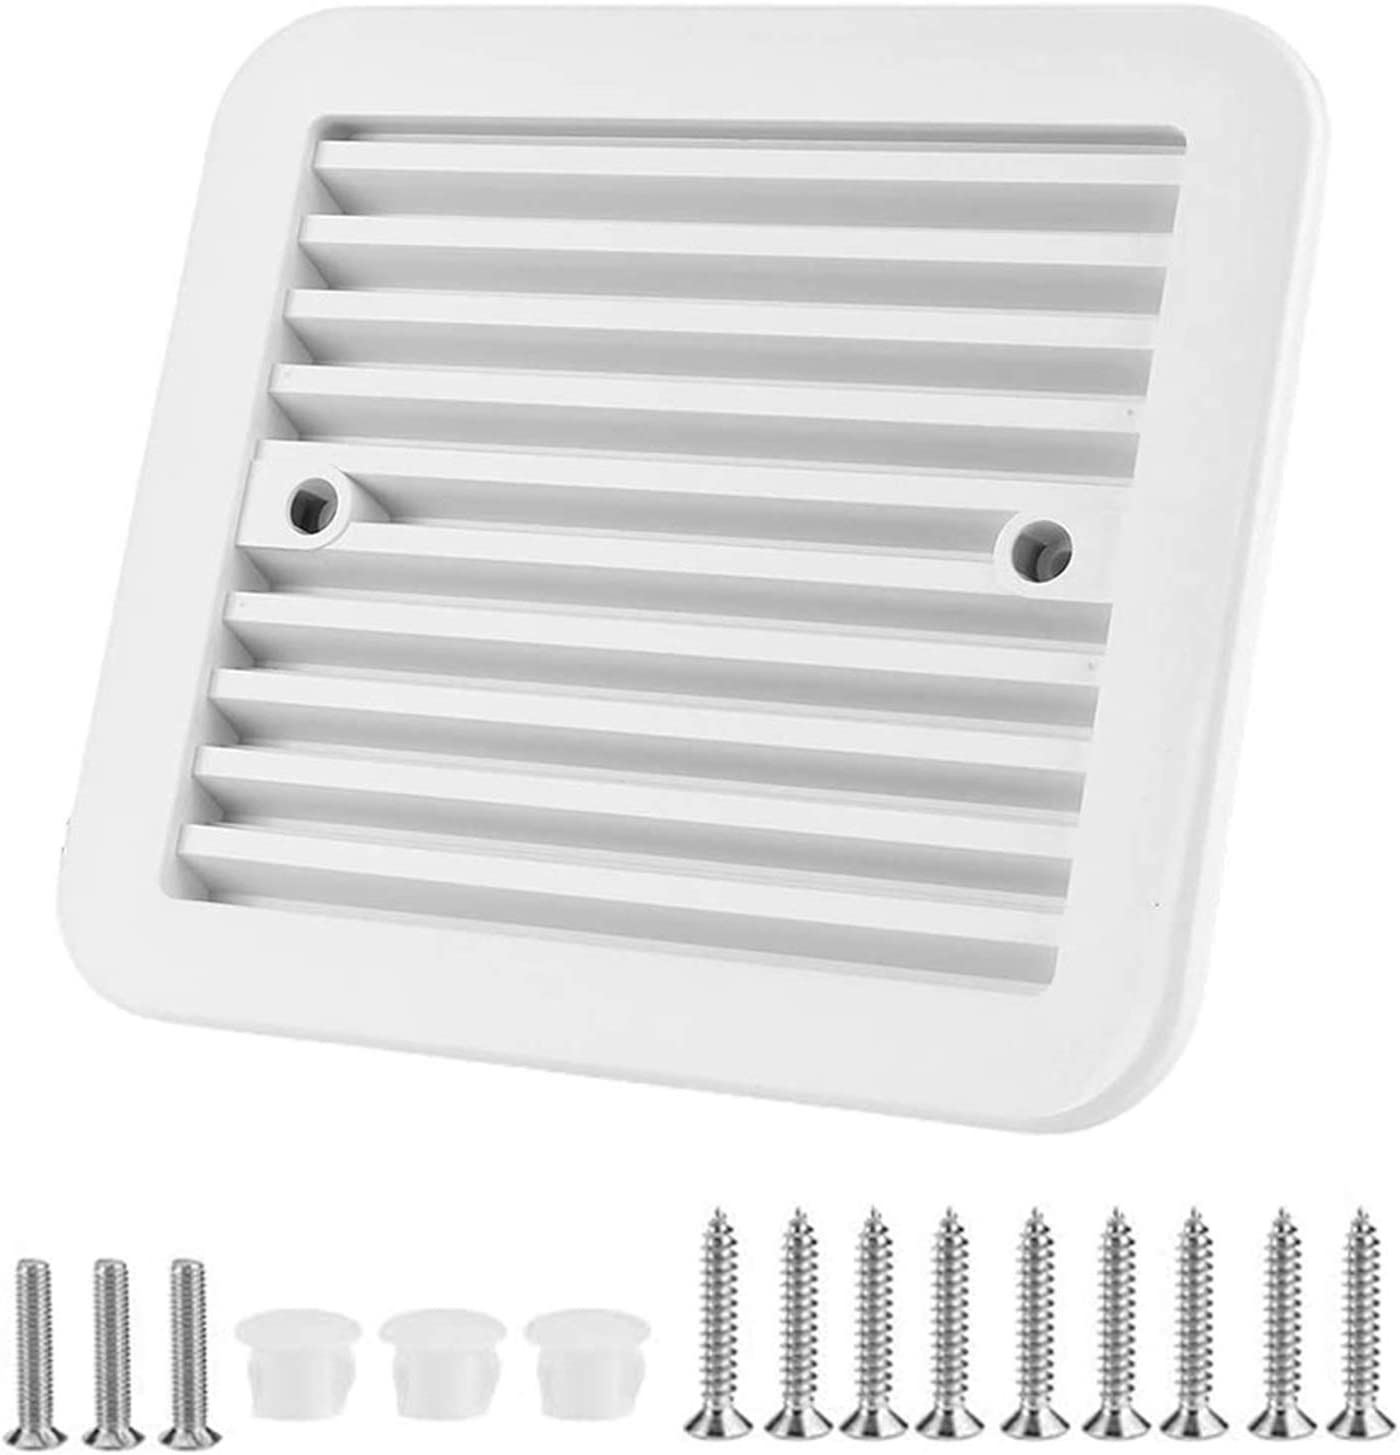 LJLWX Air Conditioning Baffle 2V outlet Caravan Cooling Ranking TOP5 RV Exhaust